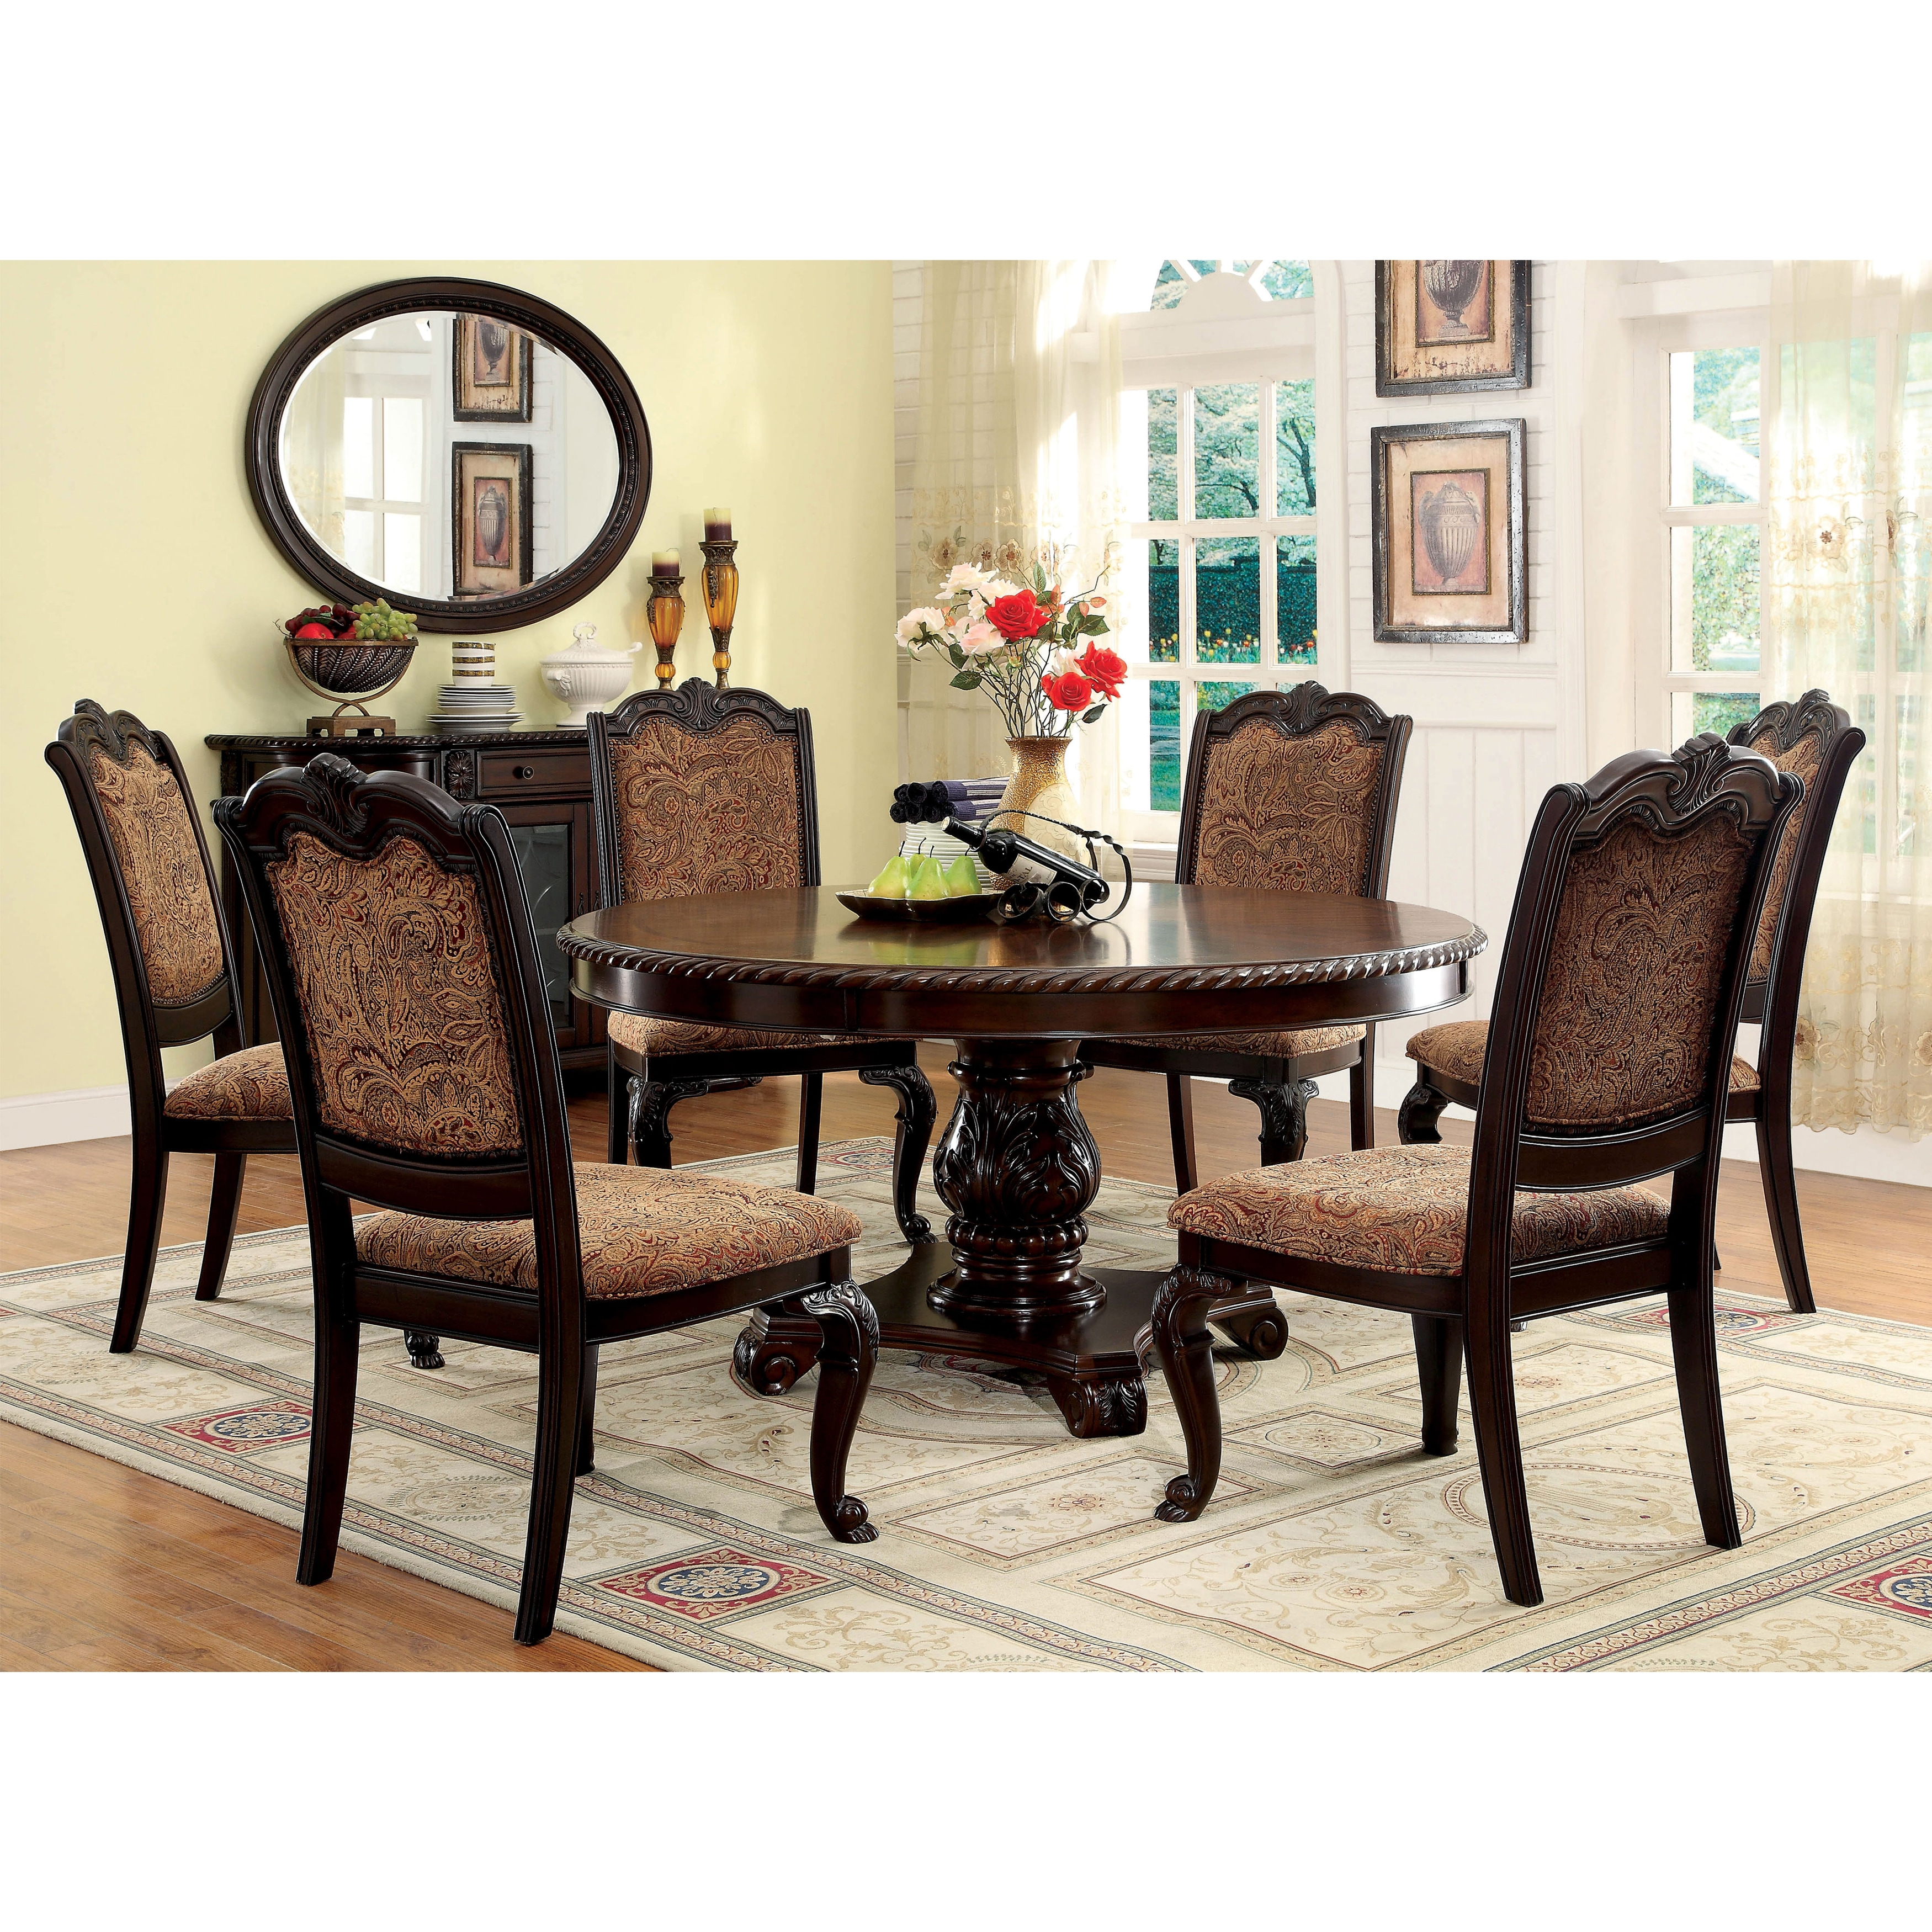 Miraculous Furniture Of America Oskarre Iii Brown Cherry 7 Piece Round Dining Set Caraccident5 Cool Chair Designs And Ideas Caraccident5Info